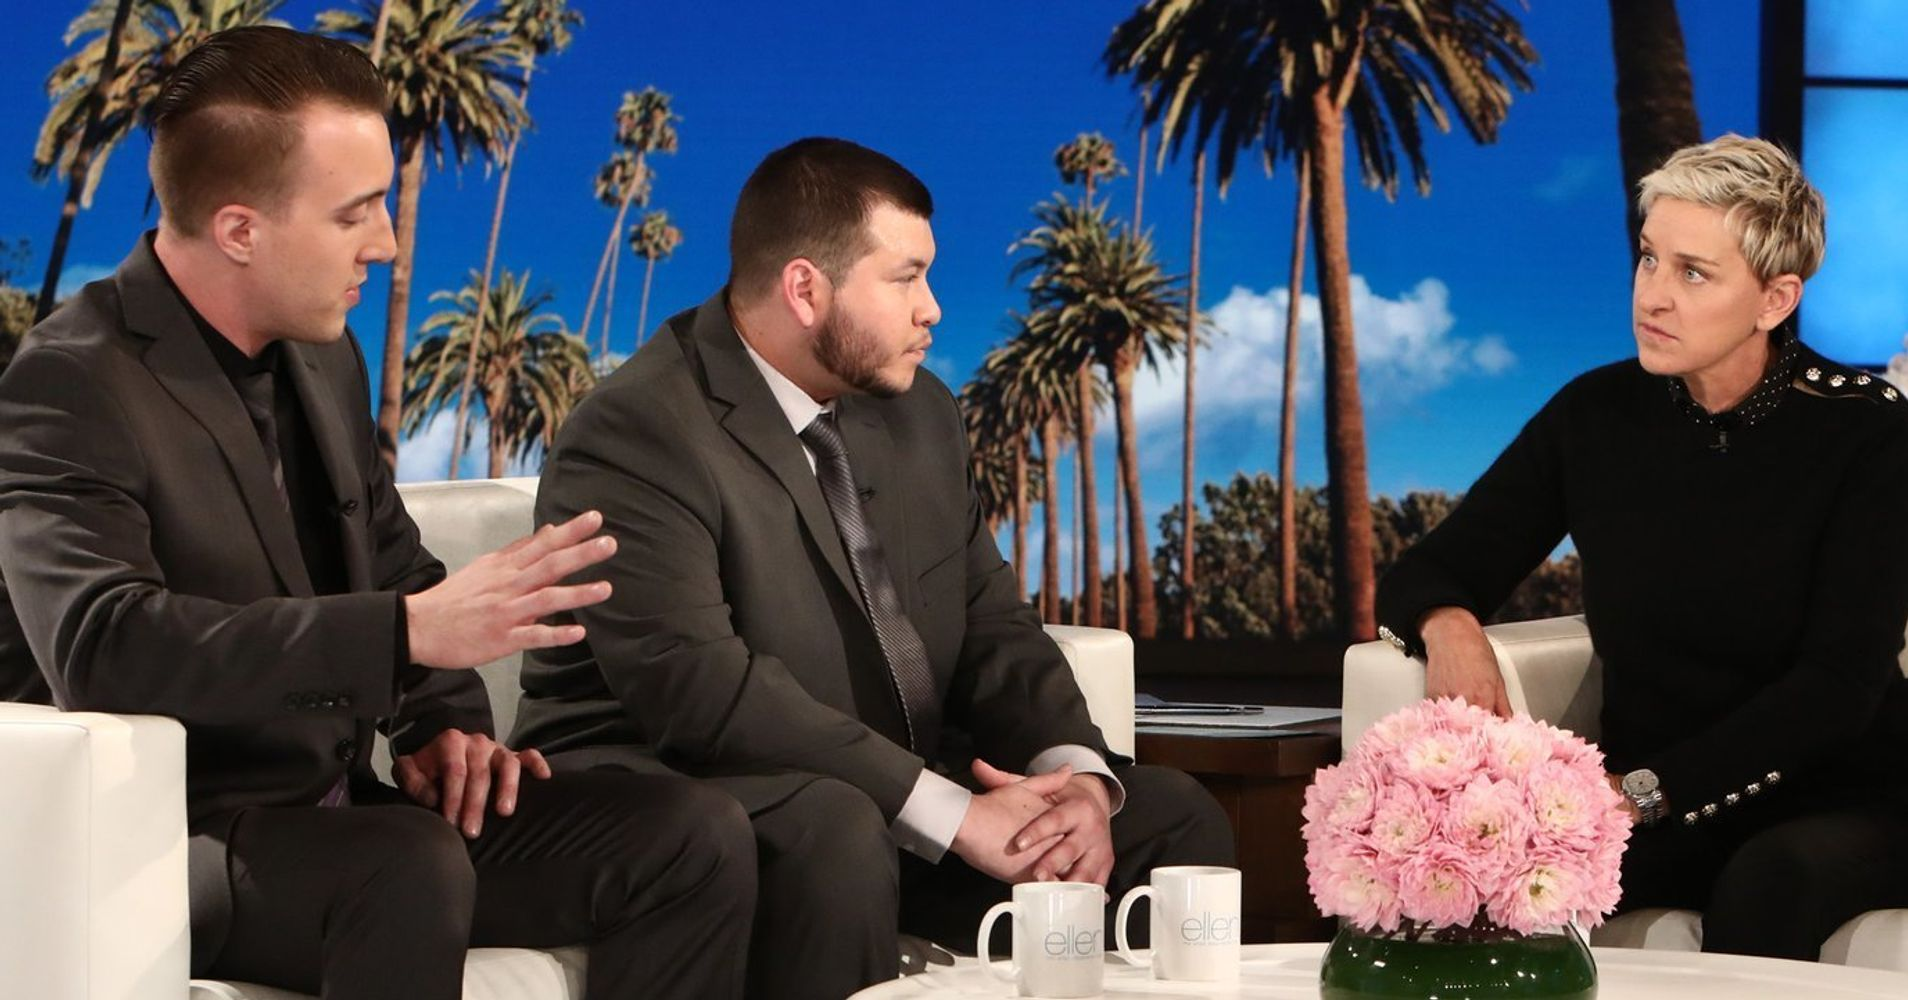 Mandalay Bay Security Guard To Appear On 'Ellen' After ...